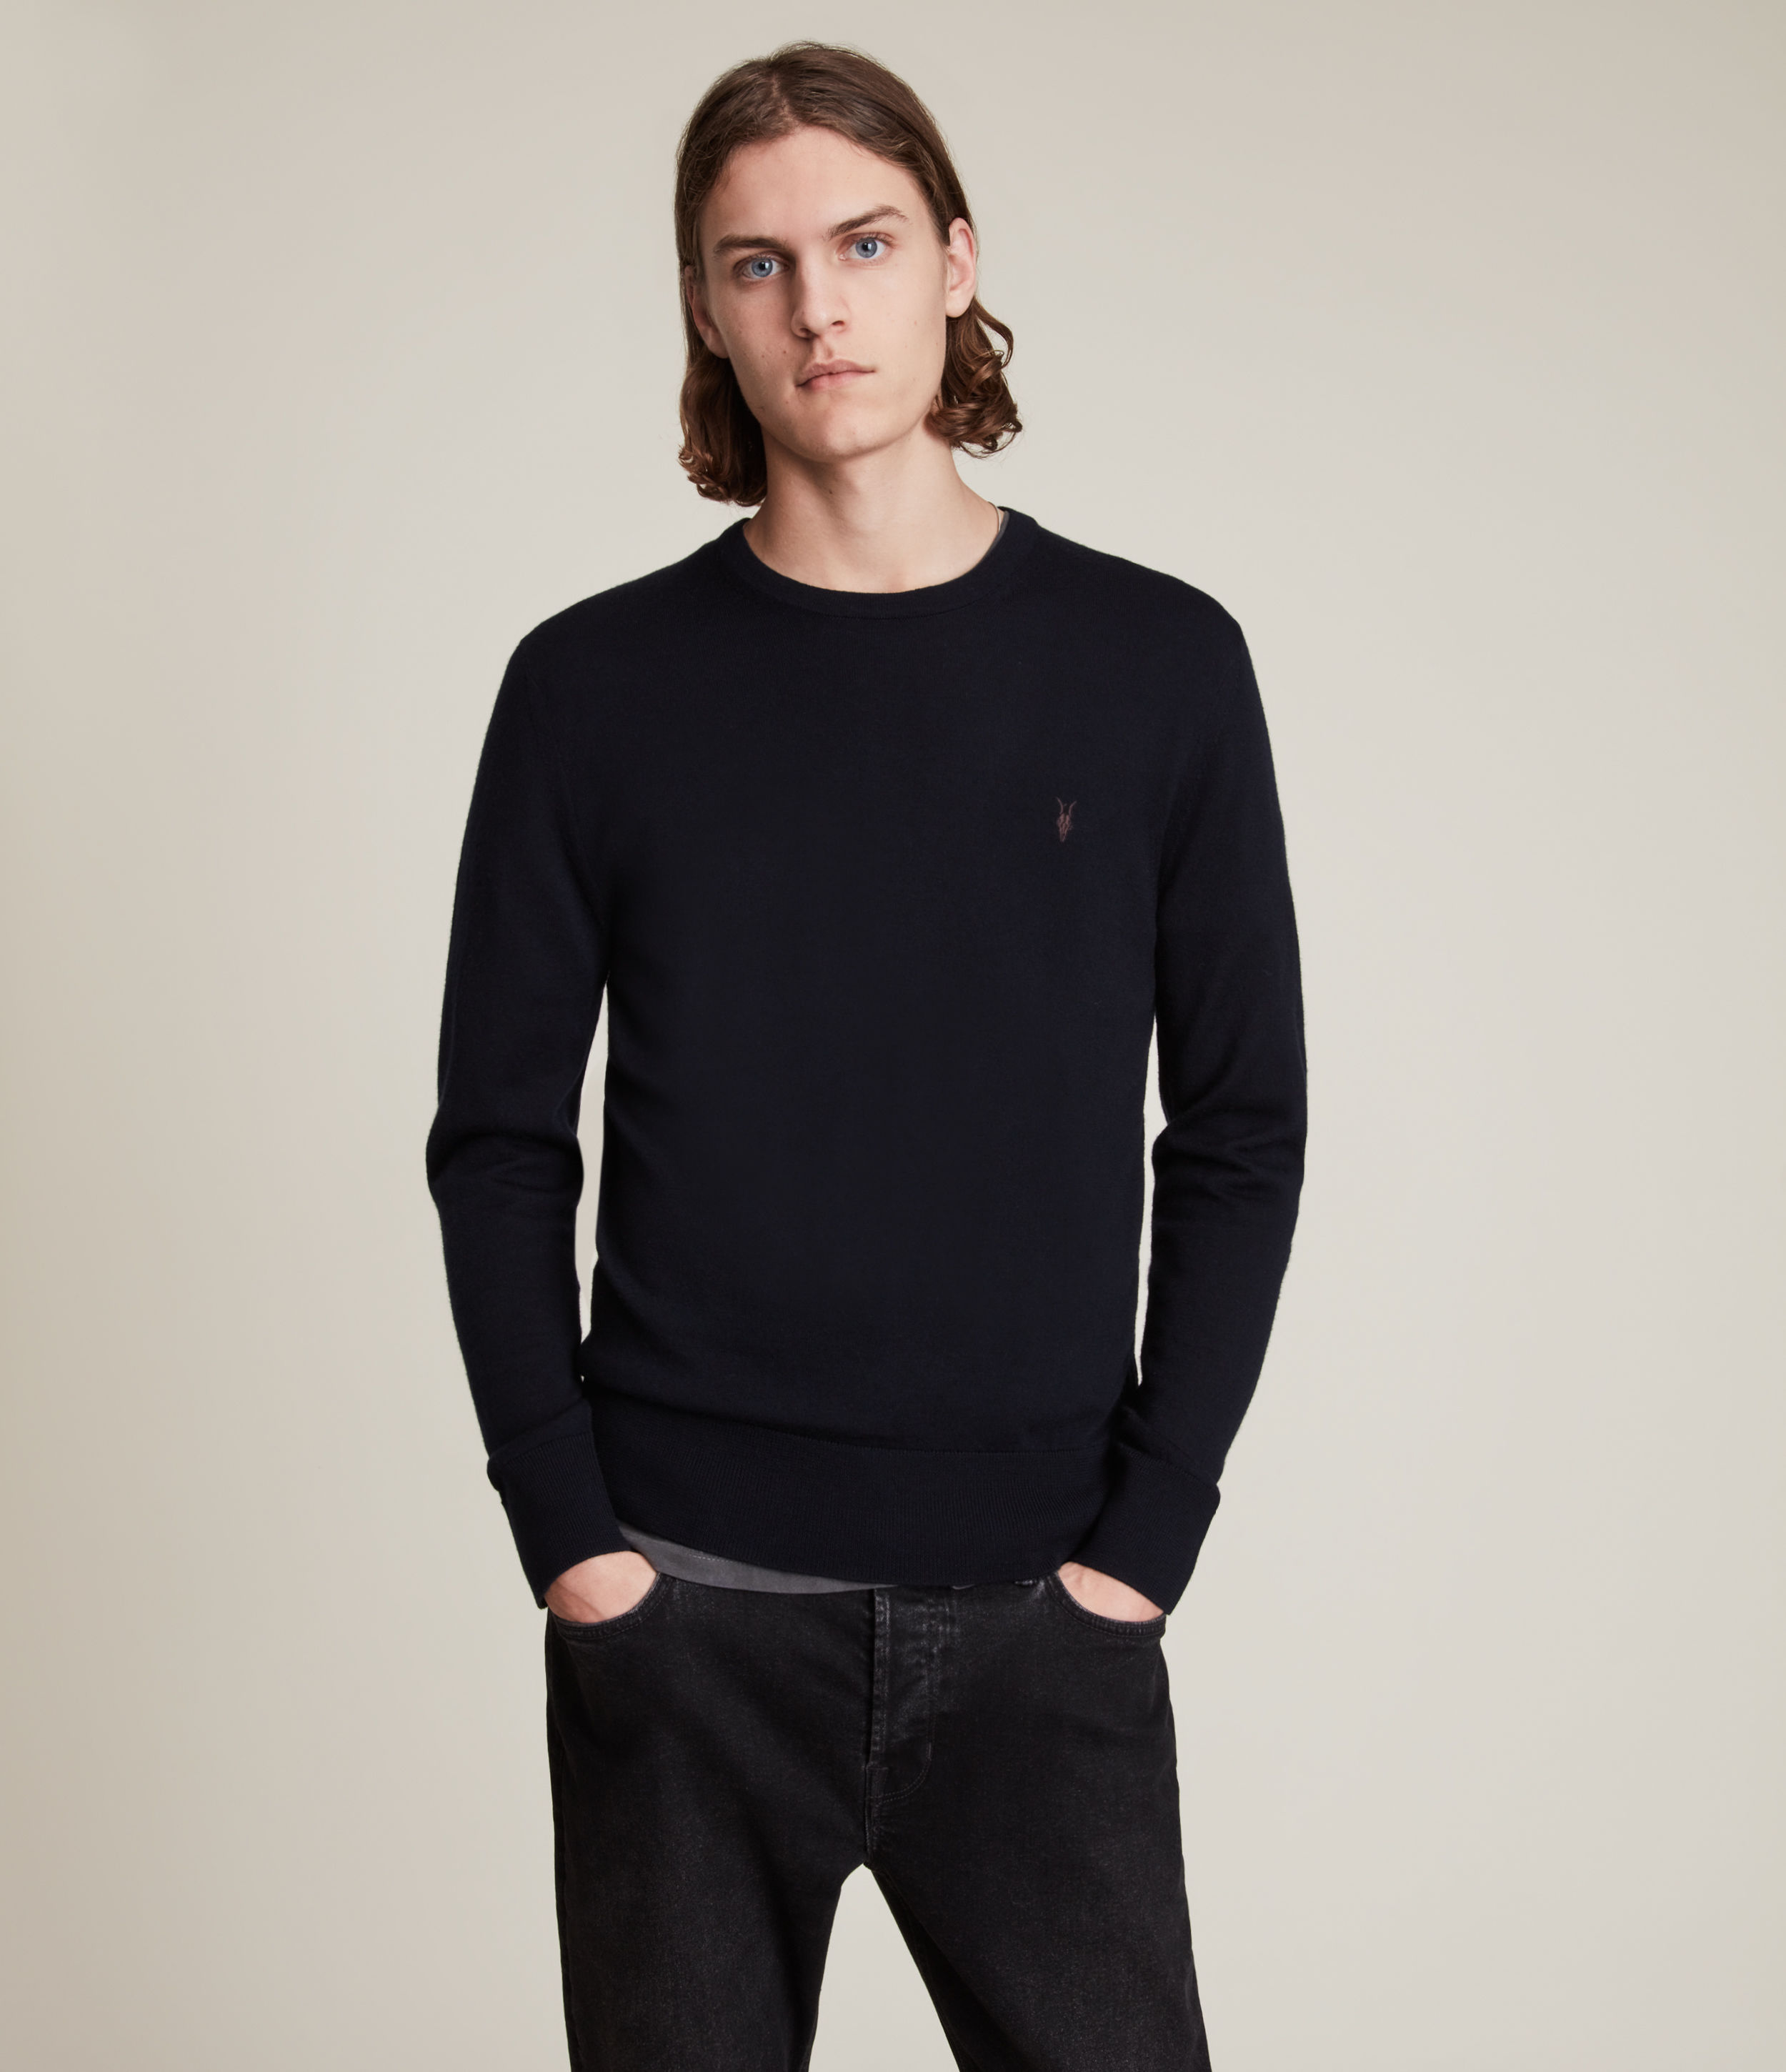 AllSaints Men's Lightweight Merino Wool Mode Crew Jumper, Blue, Size: S